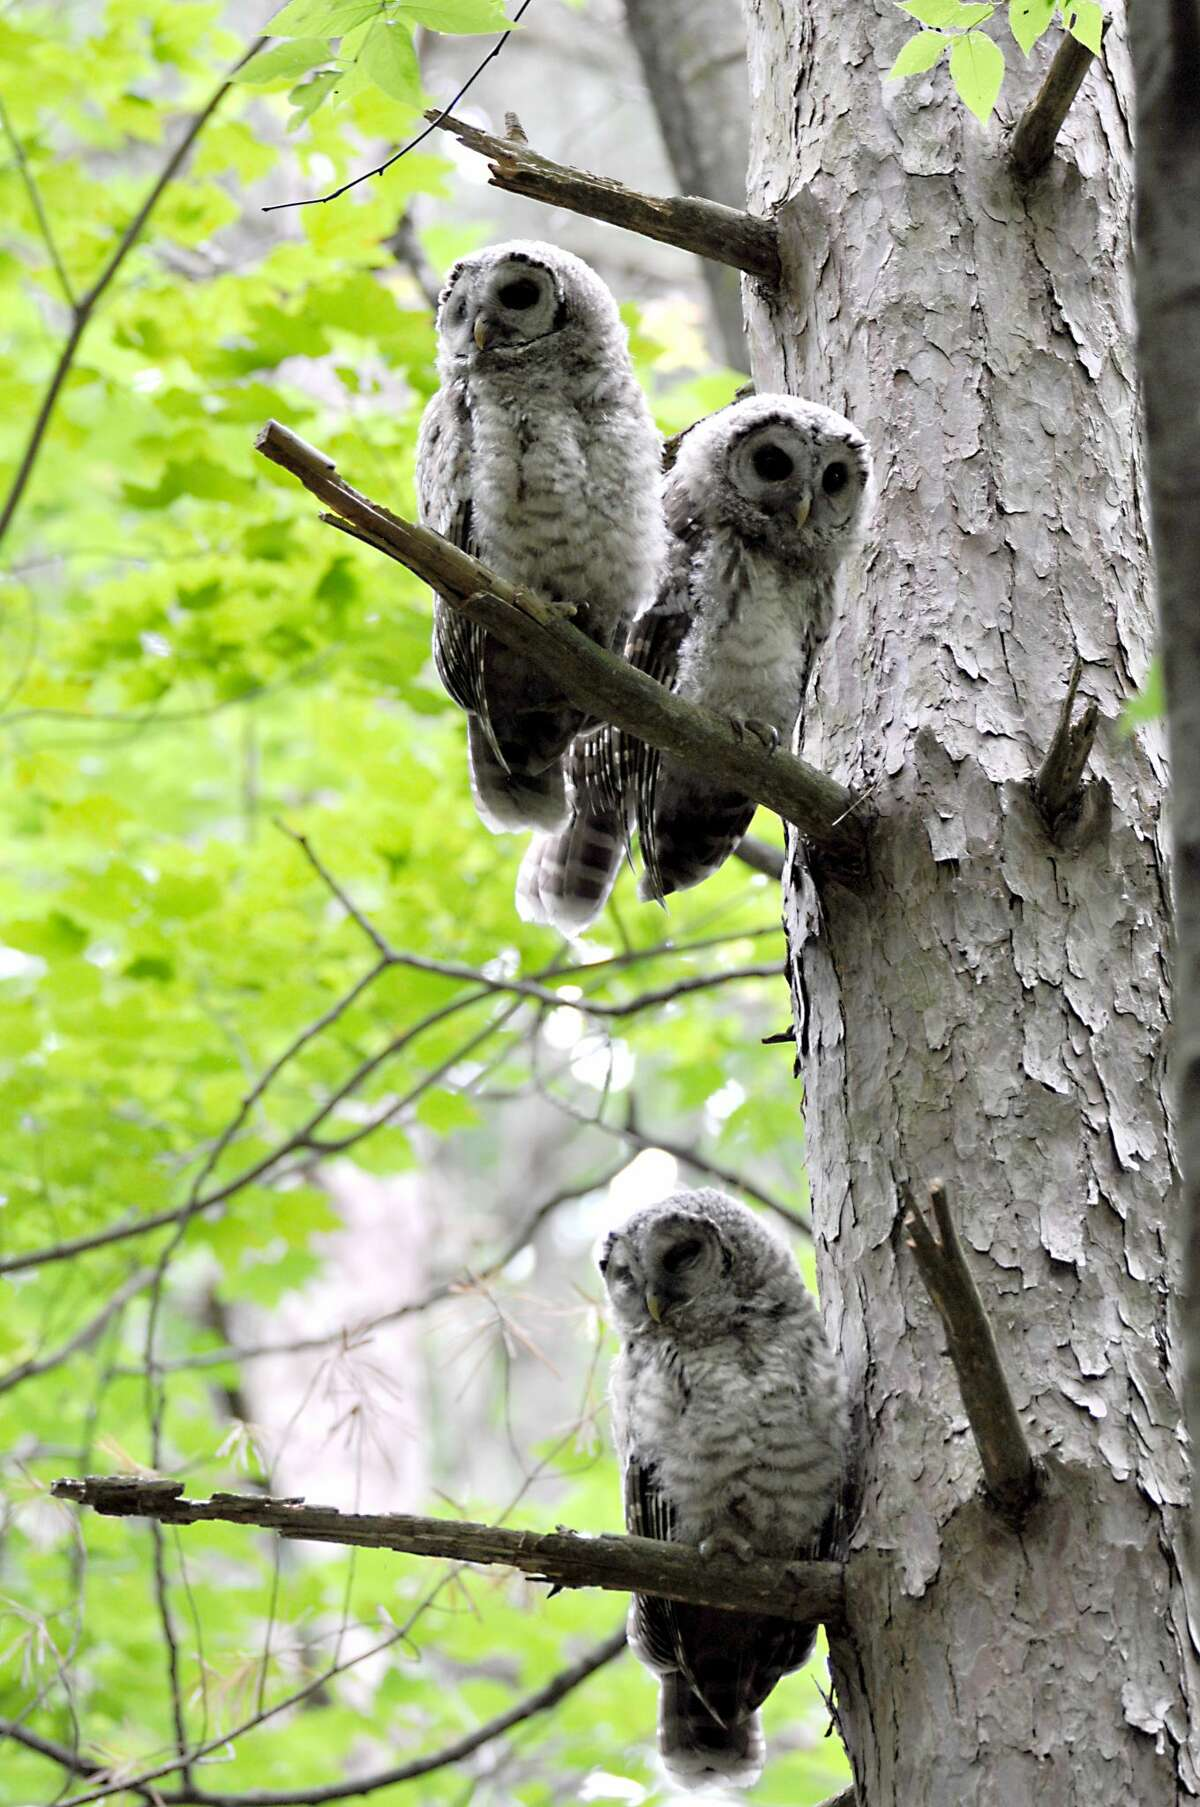 A family of owls hangs out in Clifton Park's Kinns Road Park on Wednesday, June 19, 2019. Three owlets waited patiently with an occasional begging call for mom to deliver breakfast. She arrived and they responded in spectacular fashion. (Joyce Bassett / Times Union)